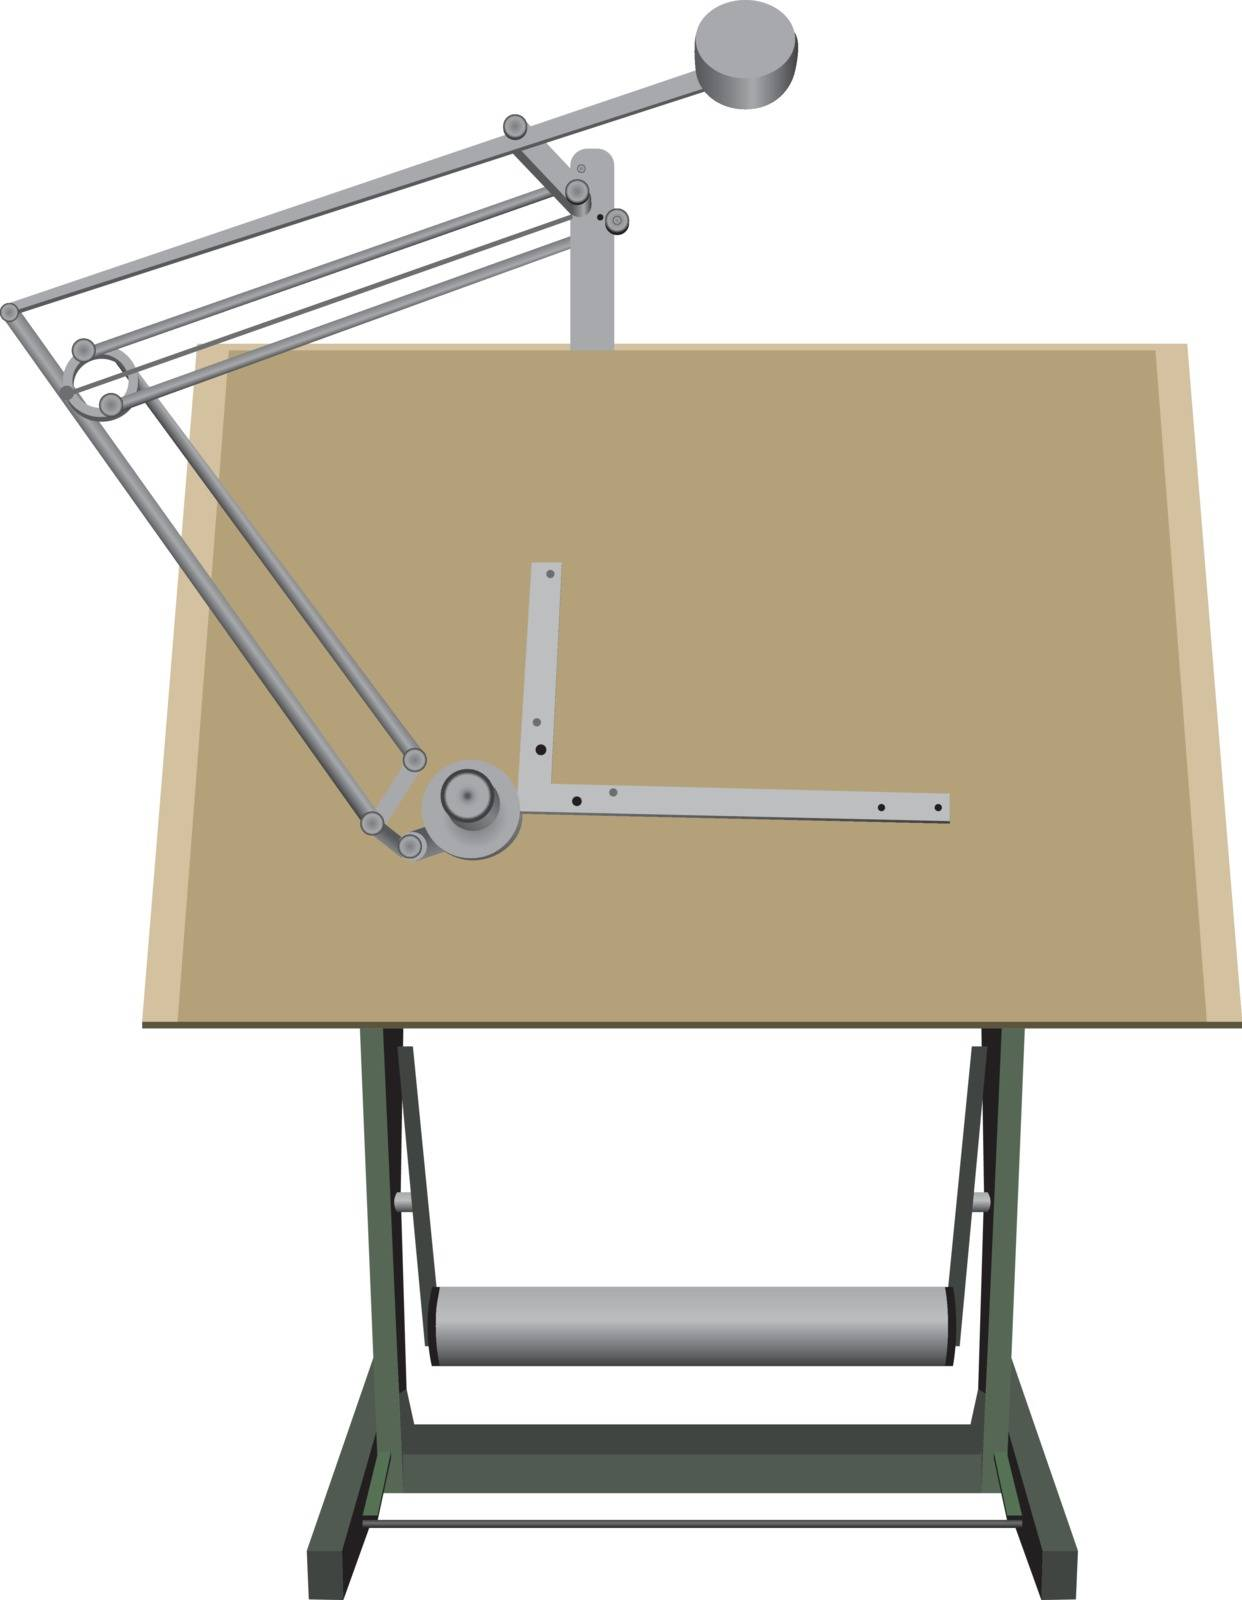 Drawing board for drawing a graphical tool for design